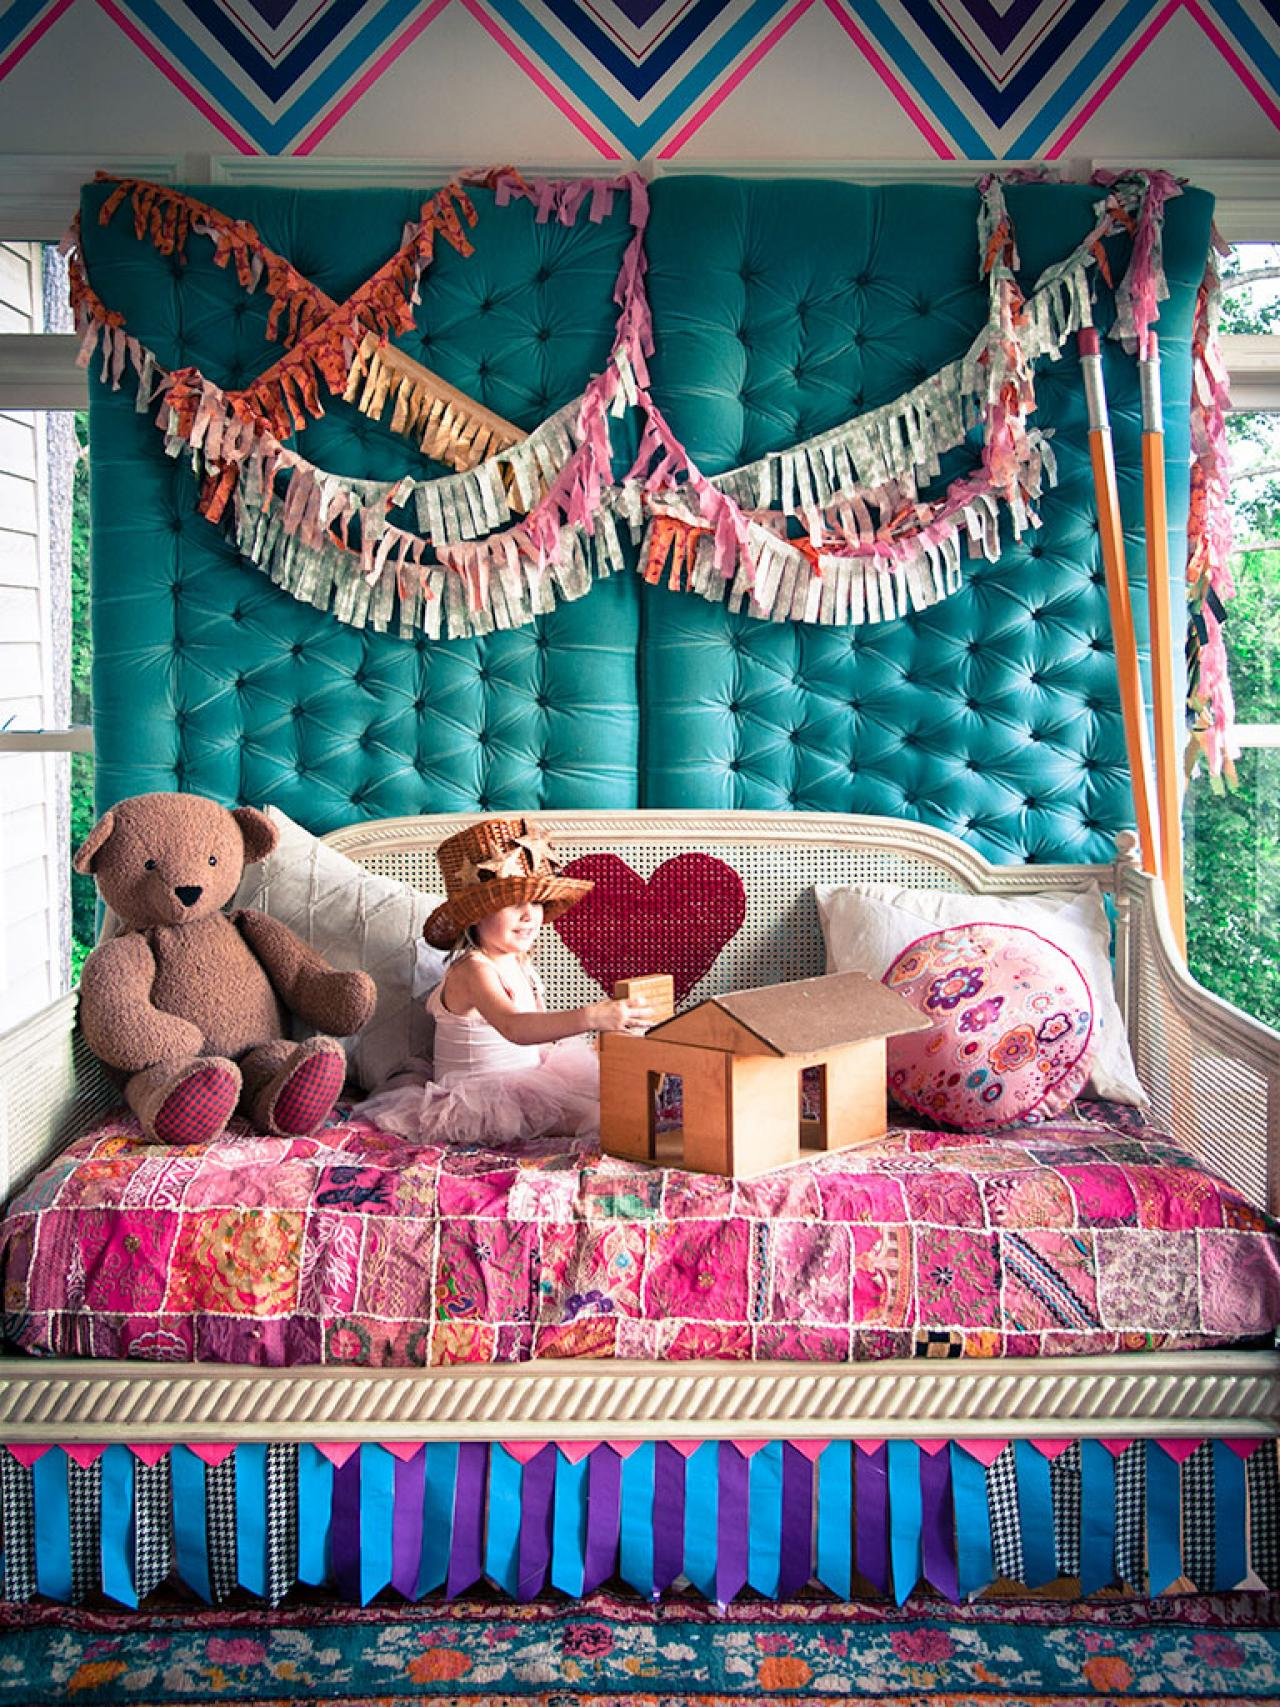 Budget friendly duct tape decorations for kids 39 rooms for Duct tape bedroom ideas